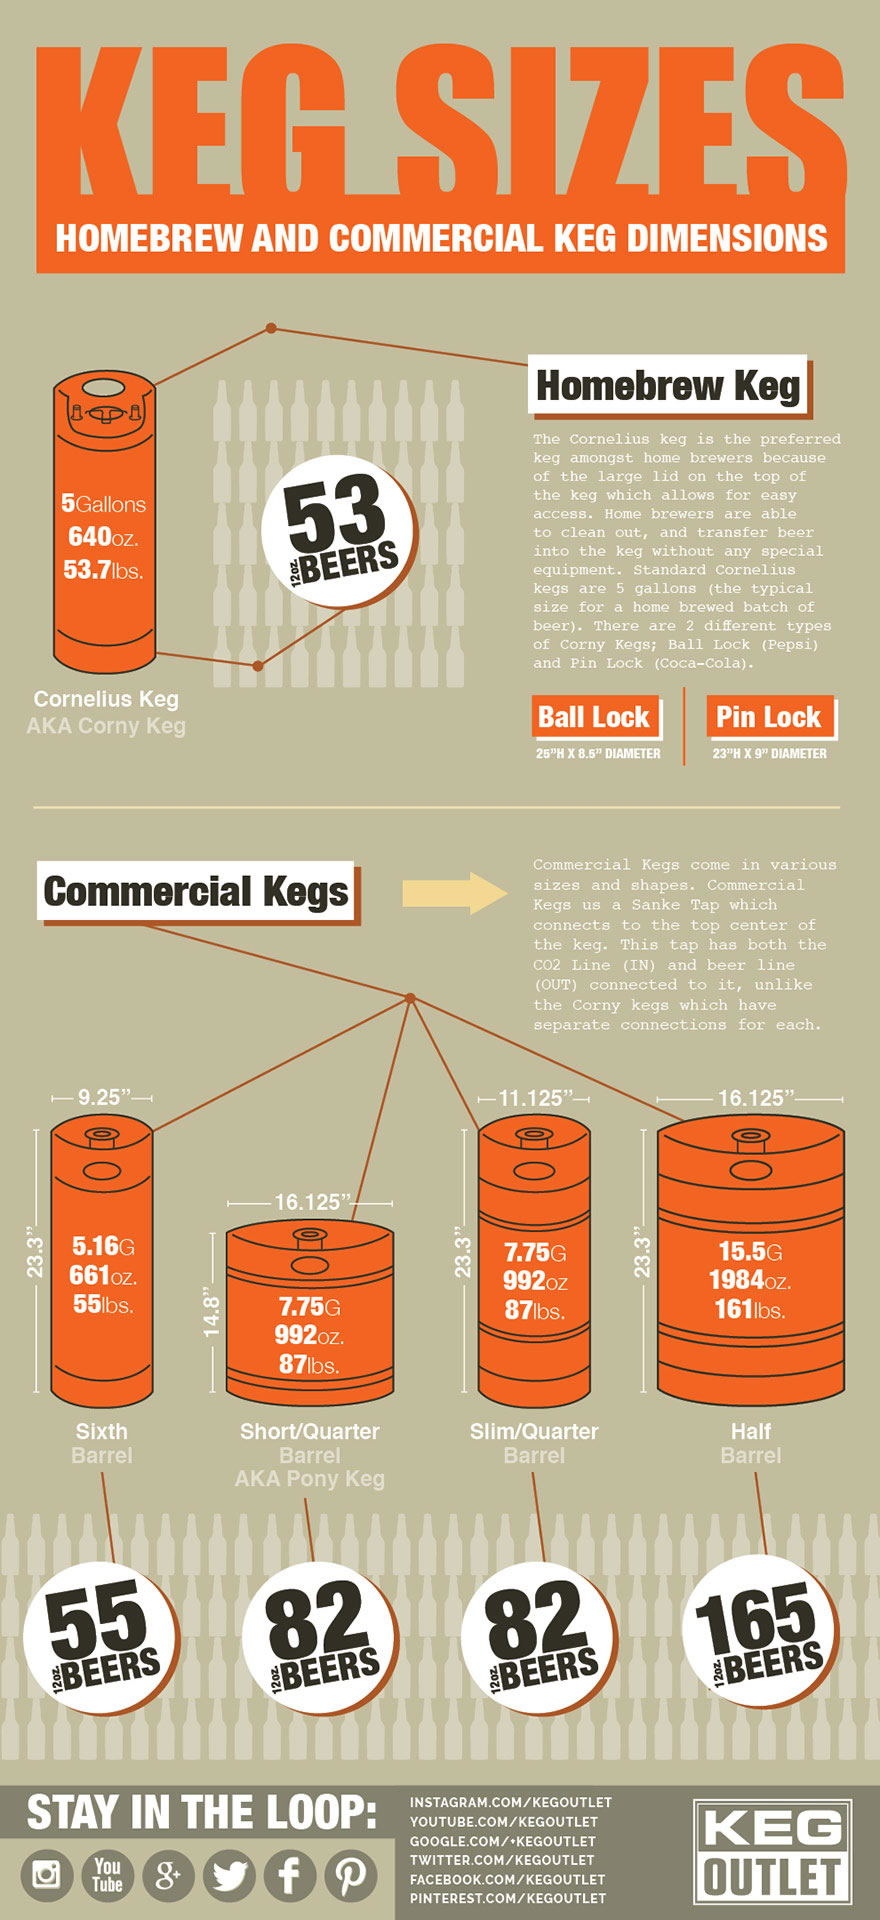 Keg Sizes and Keg Dimensions (Infographic)